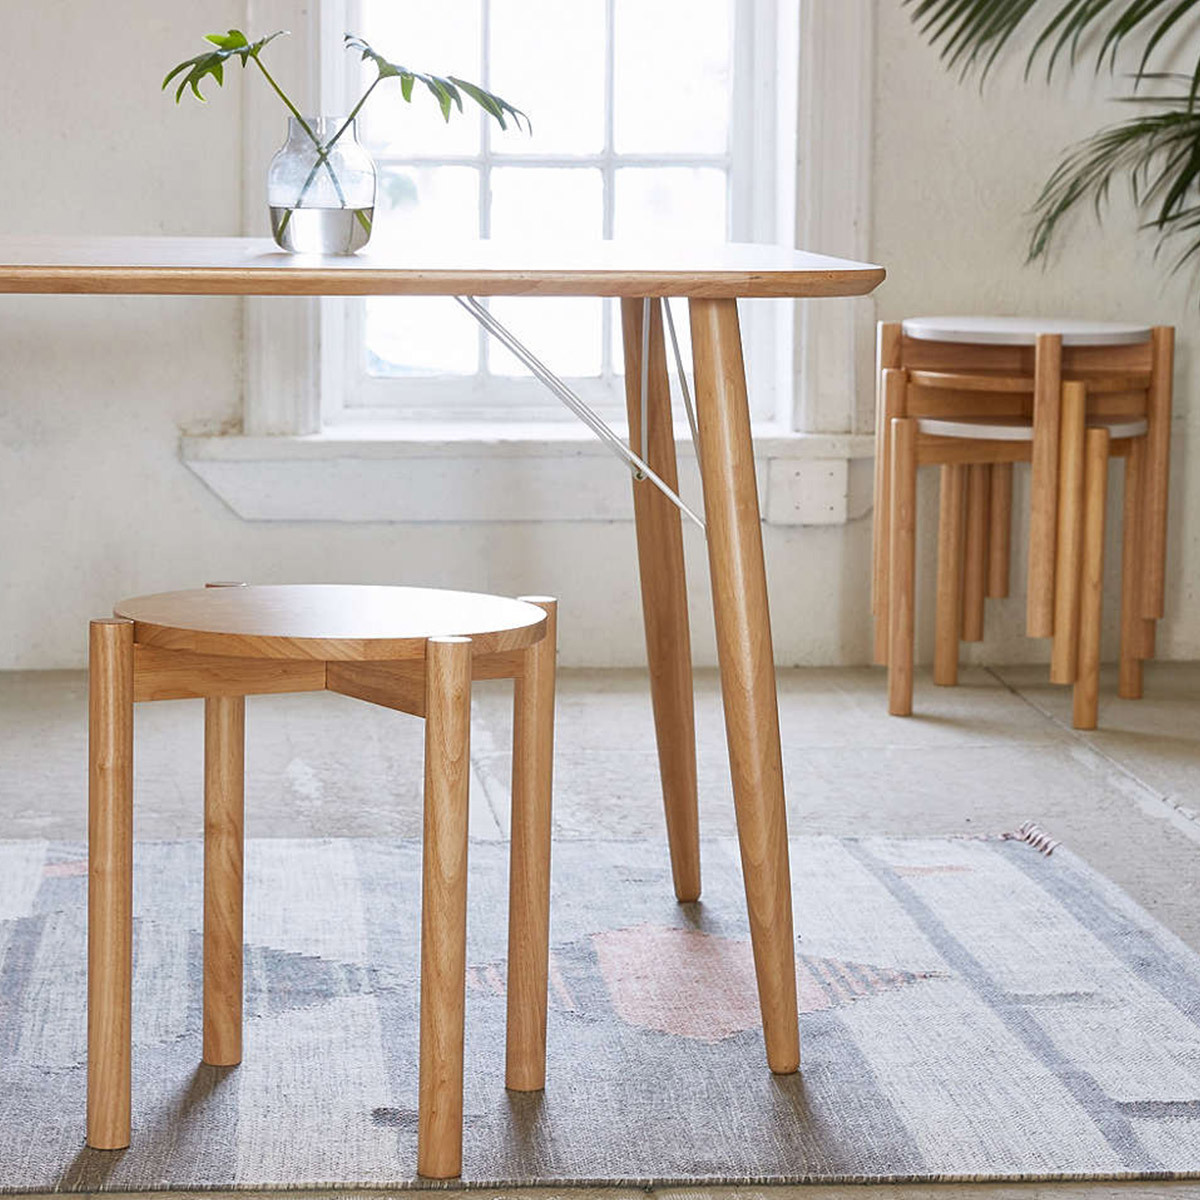 Wood stool/side table that can stack photo